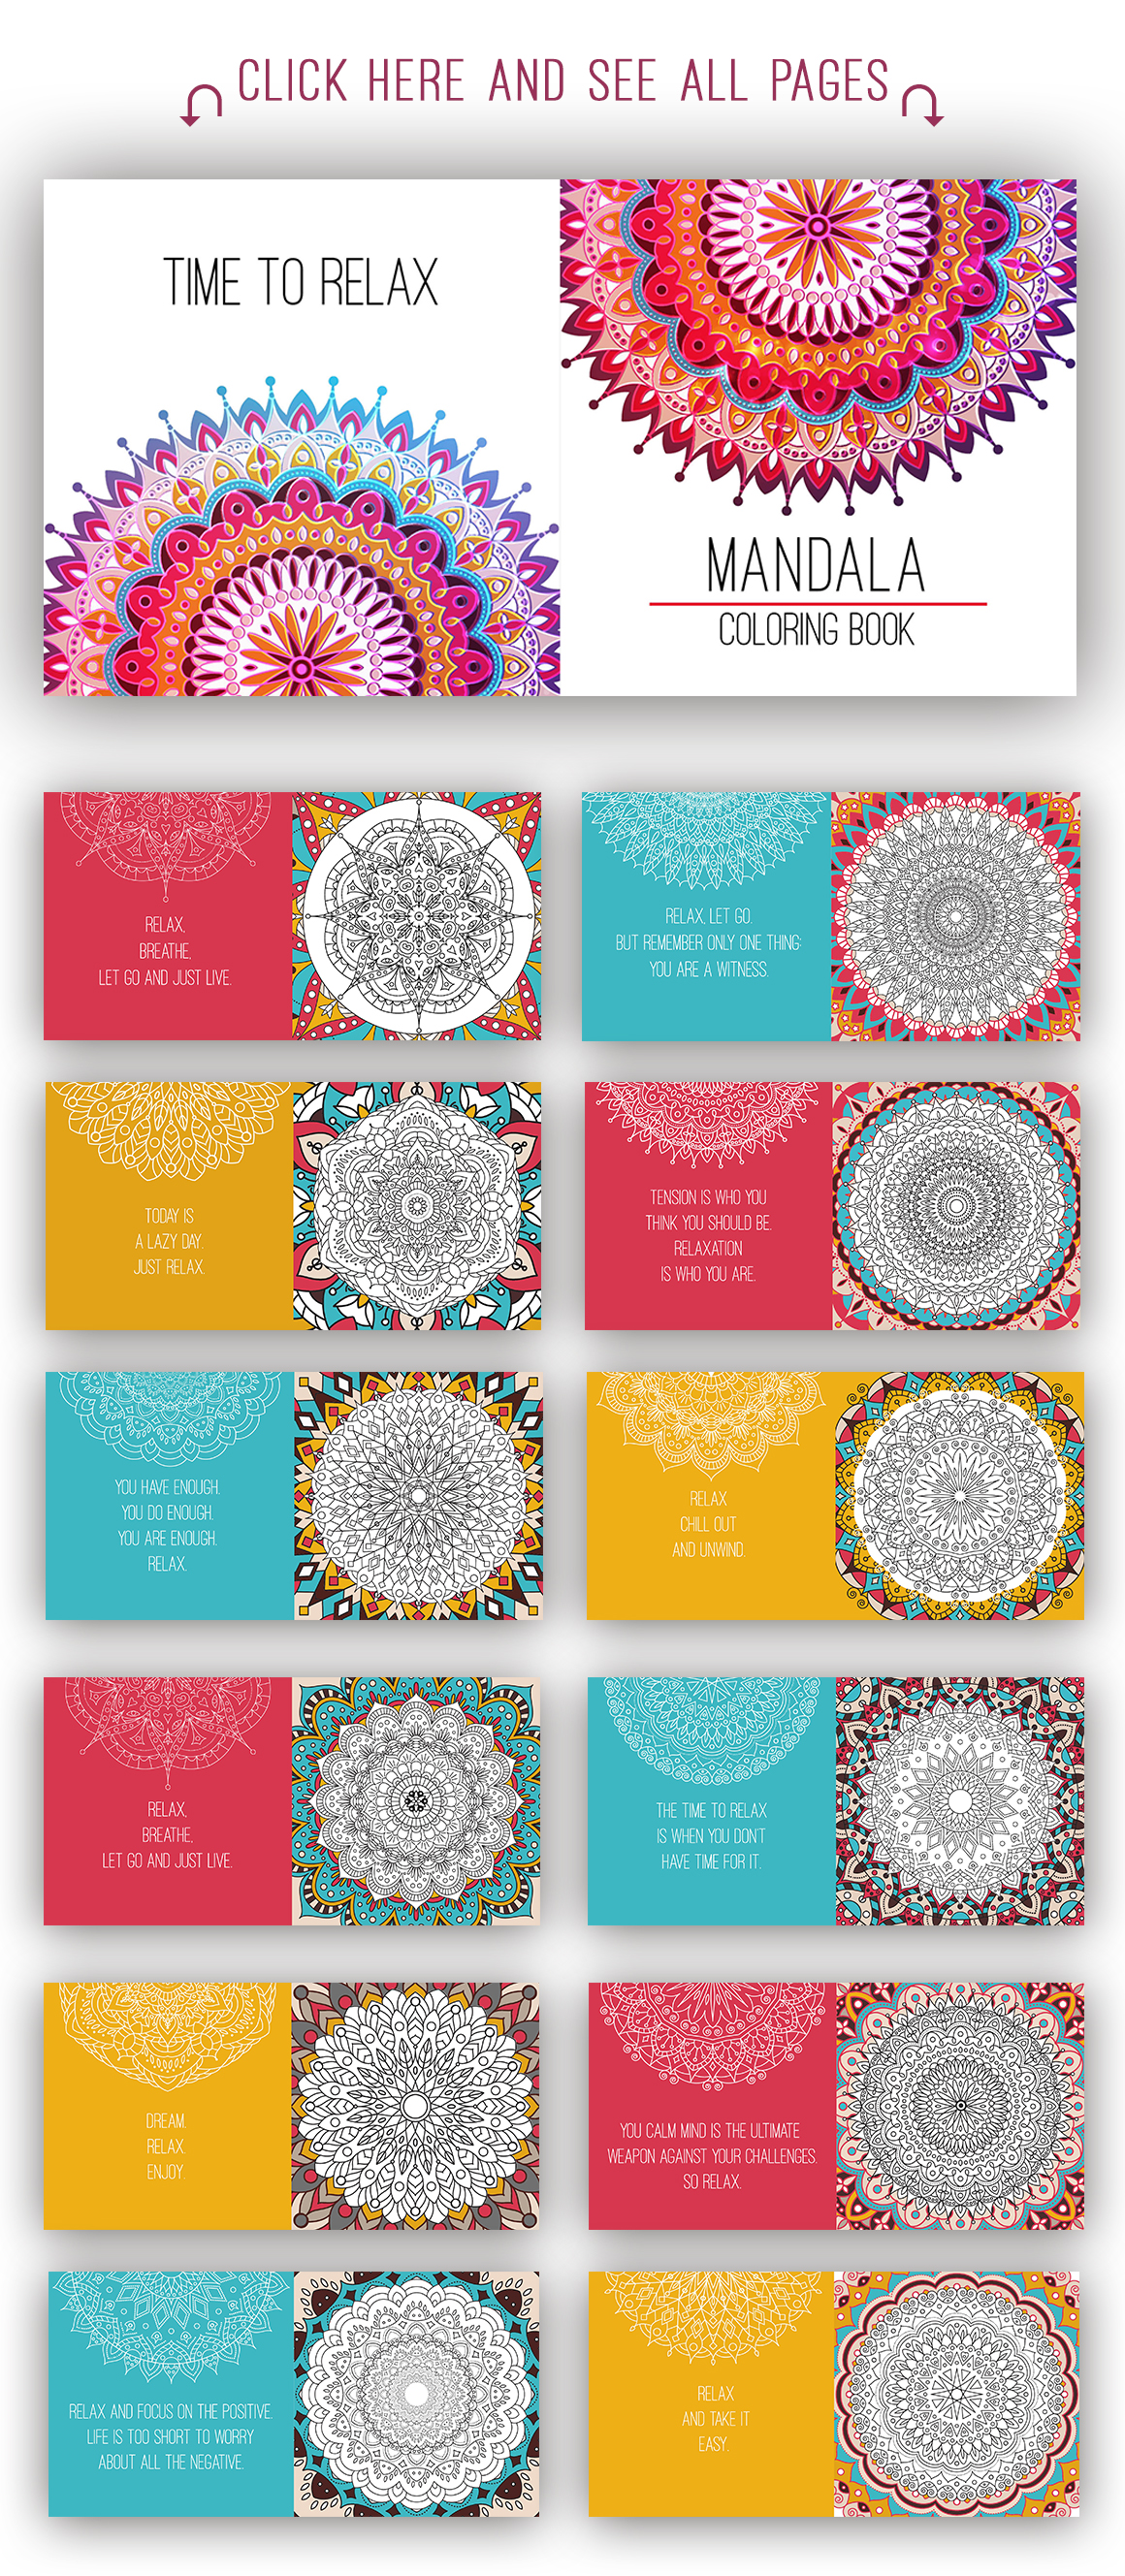 Mandala coloring book for adults. by Pe | Design Bundles